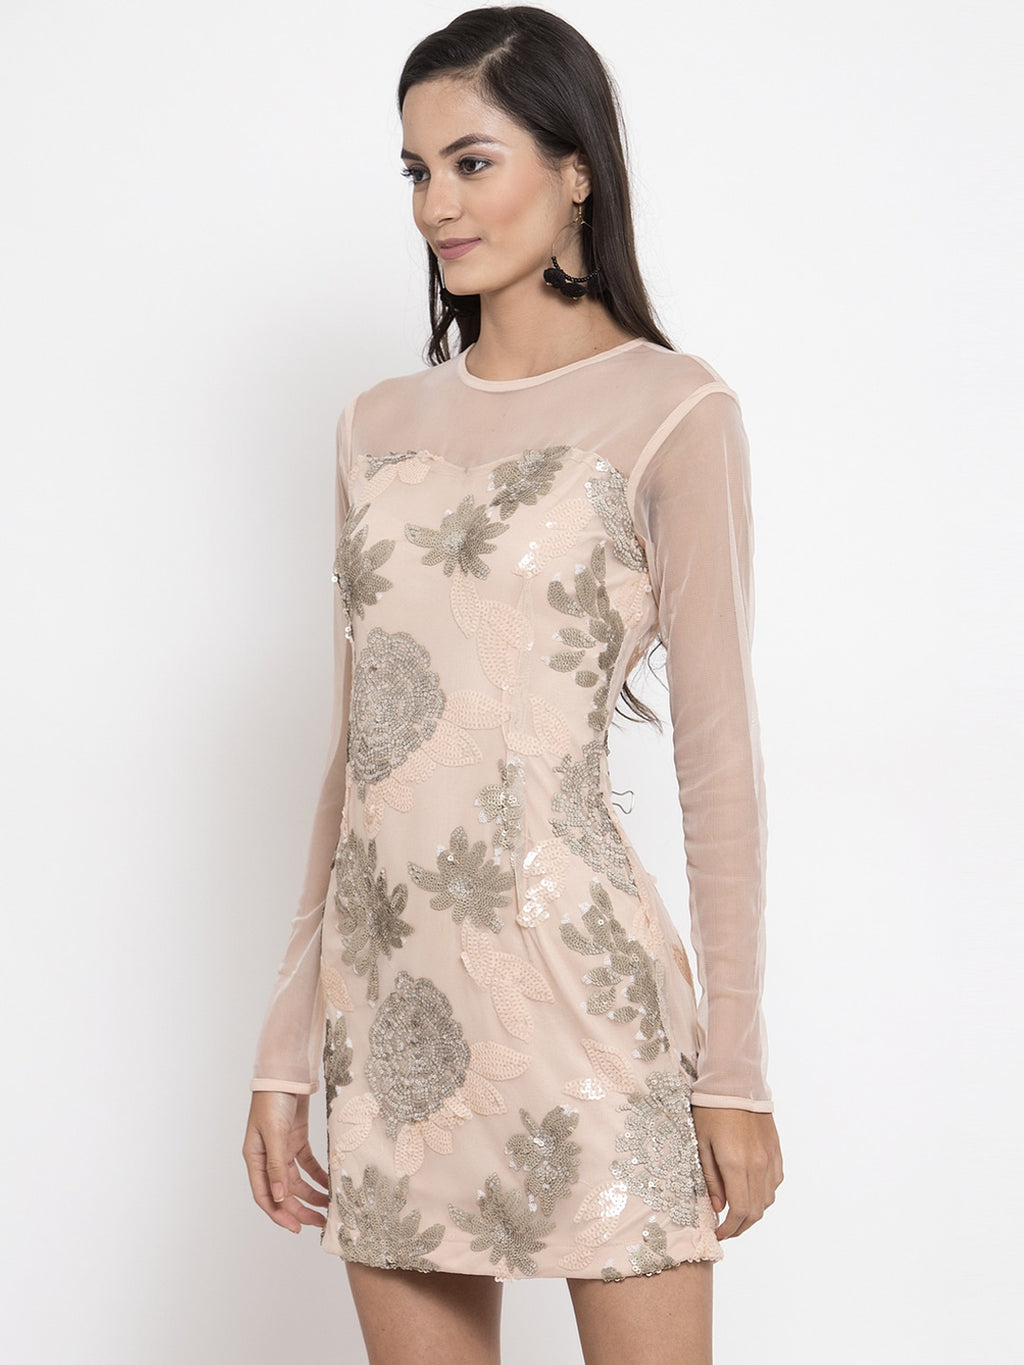 NUDE EMBELISHED SHEATH DRESS